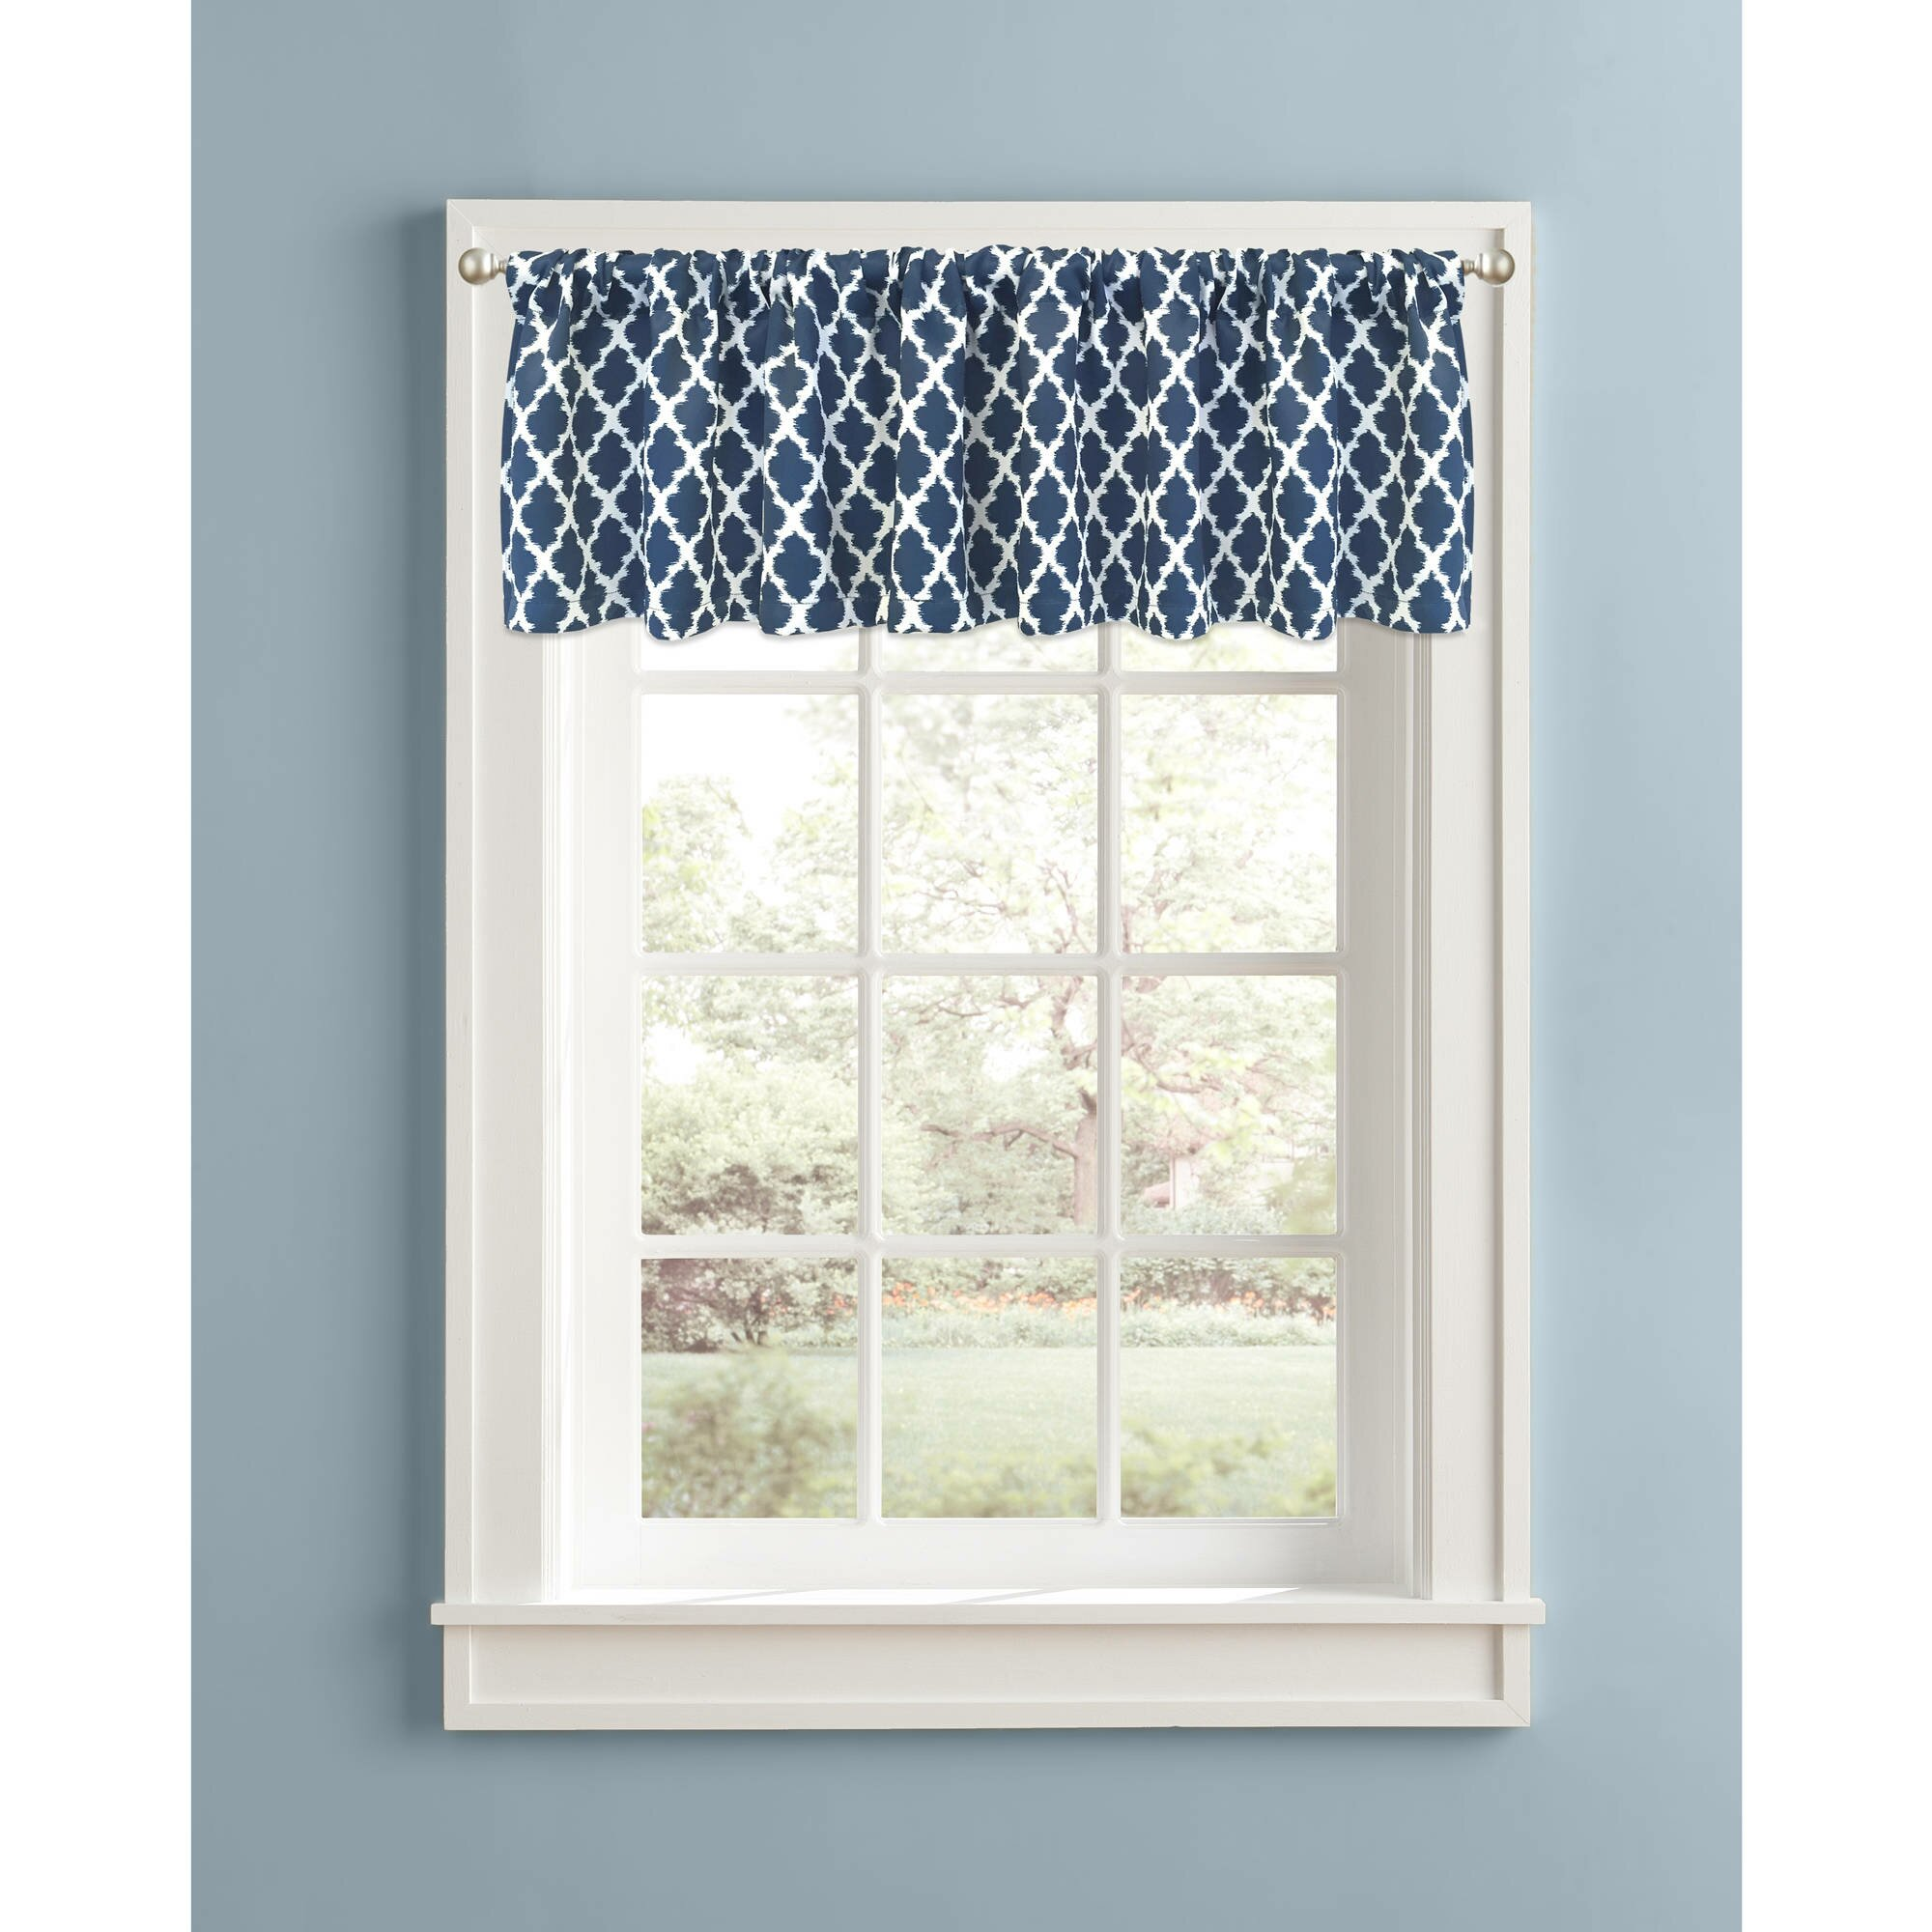 Curtain: Where To Buy Valances | Living Room Valances | Window ...